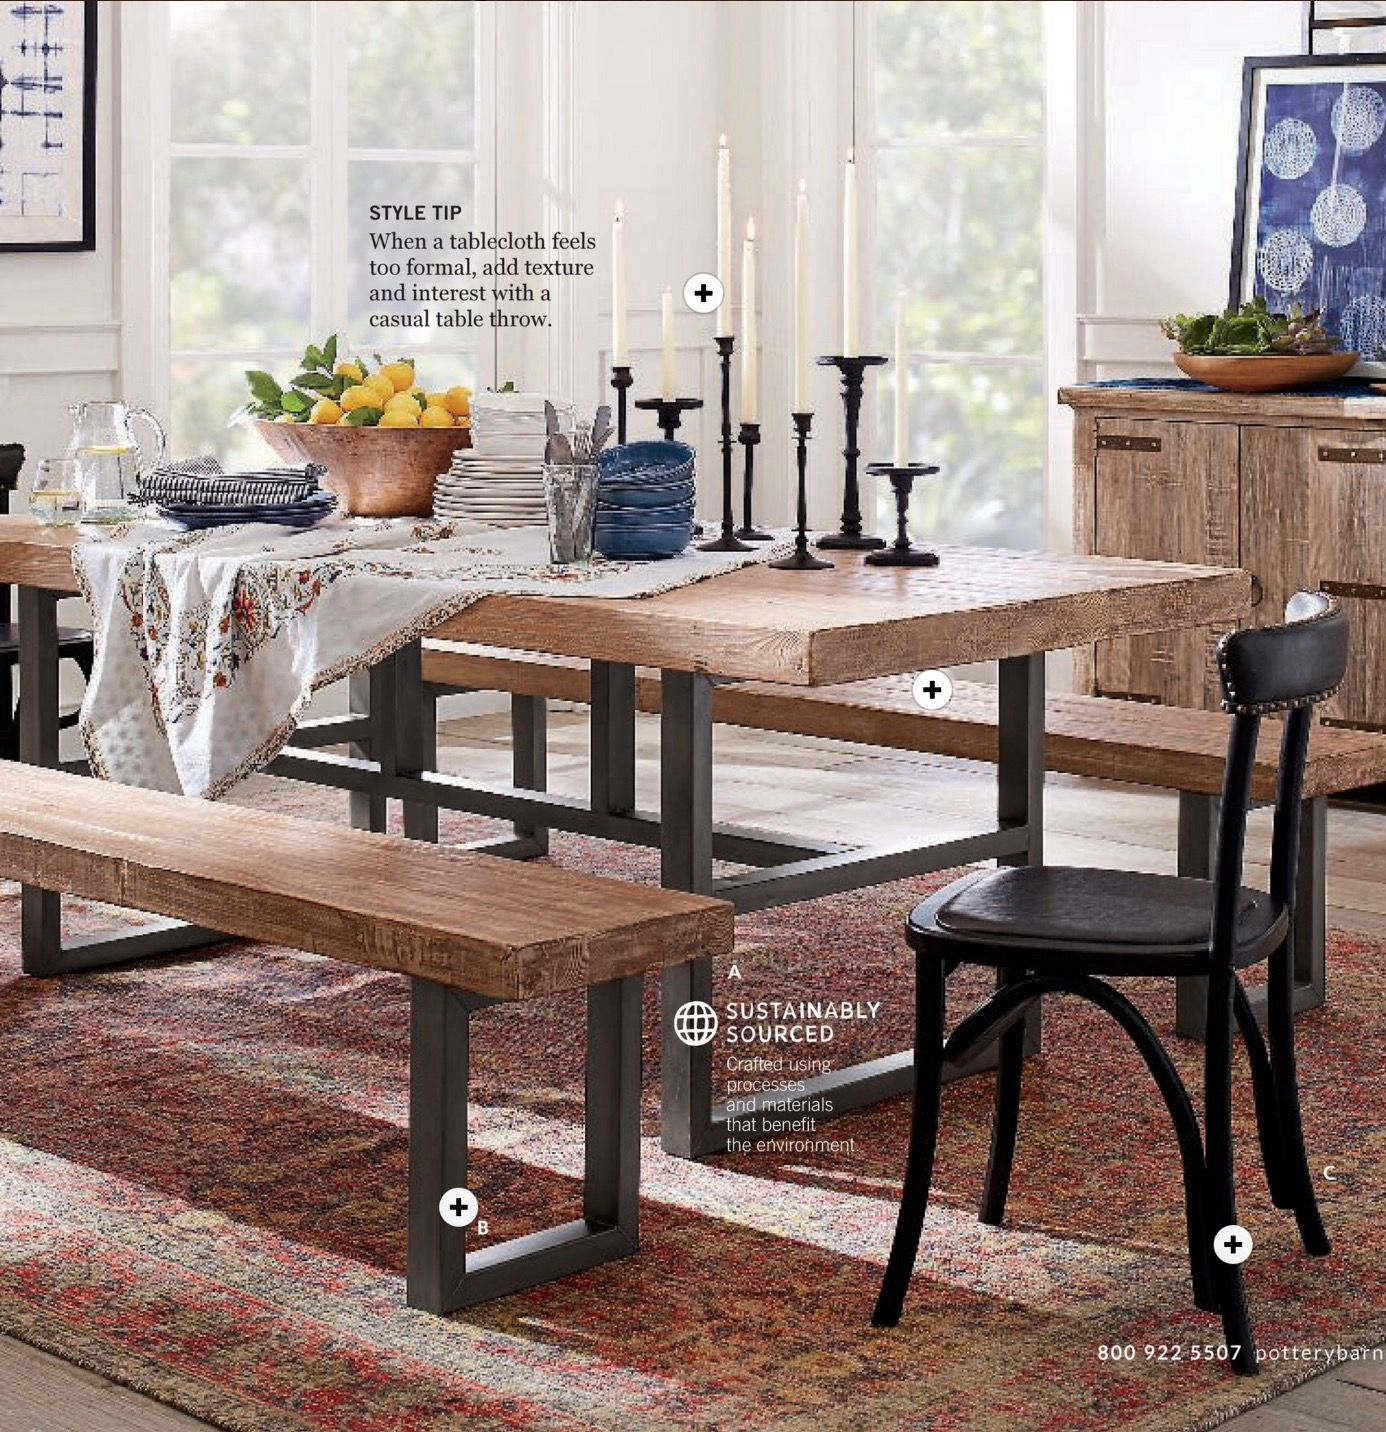 Griffin Dining Table, Lucas Dining Chairs, Donovan Pendant Inside 2018 Griffin Reclaimed Wood Dining Tables (View 11 of 25)